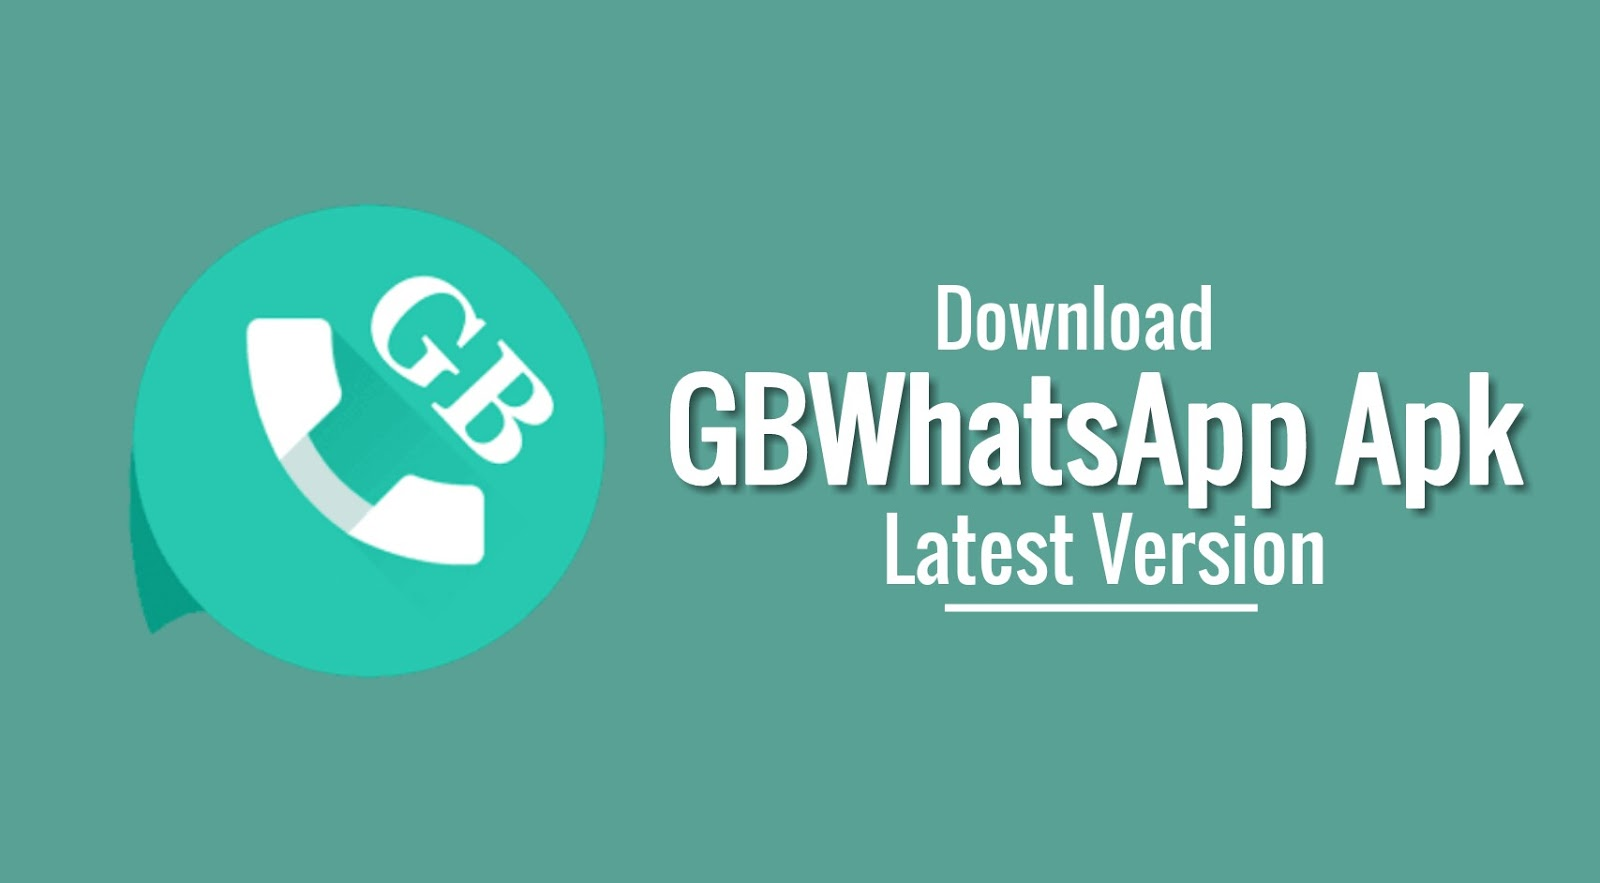 Download GBWhatsApp Version 6 40 to enjoy new features